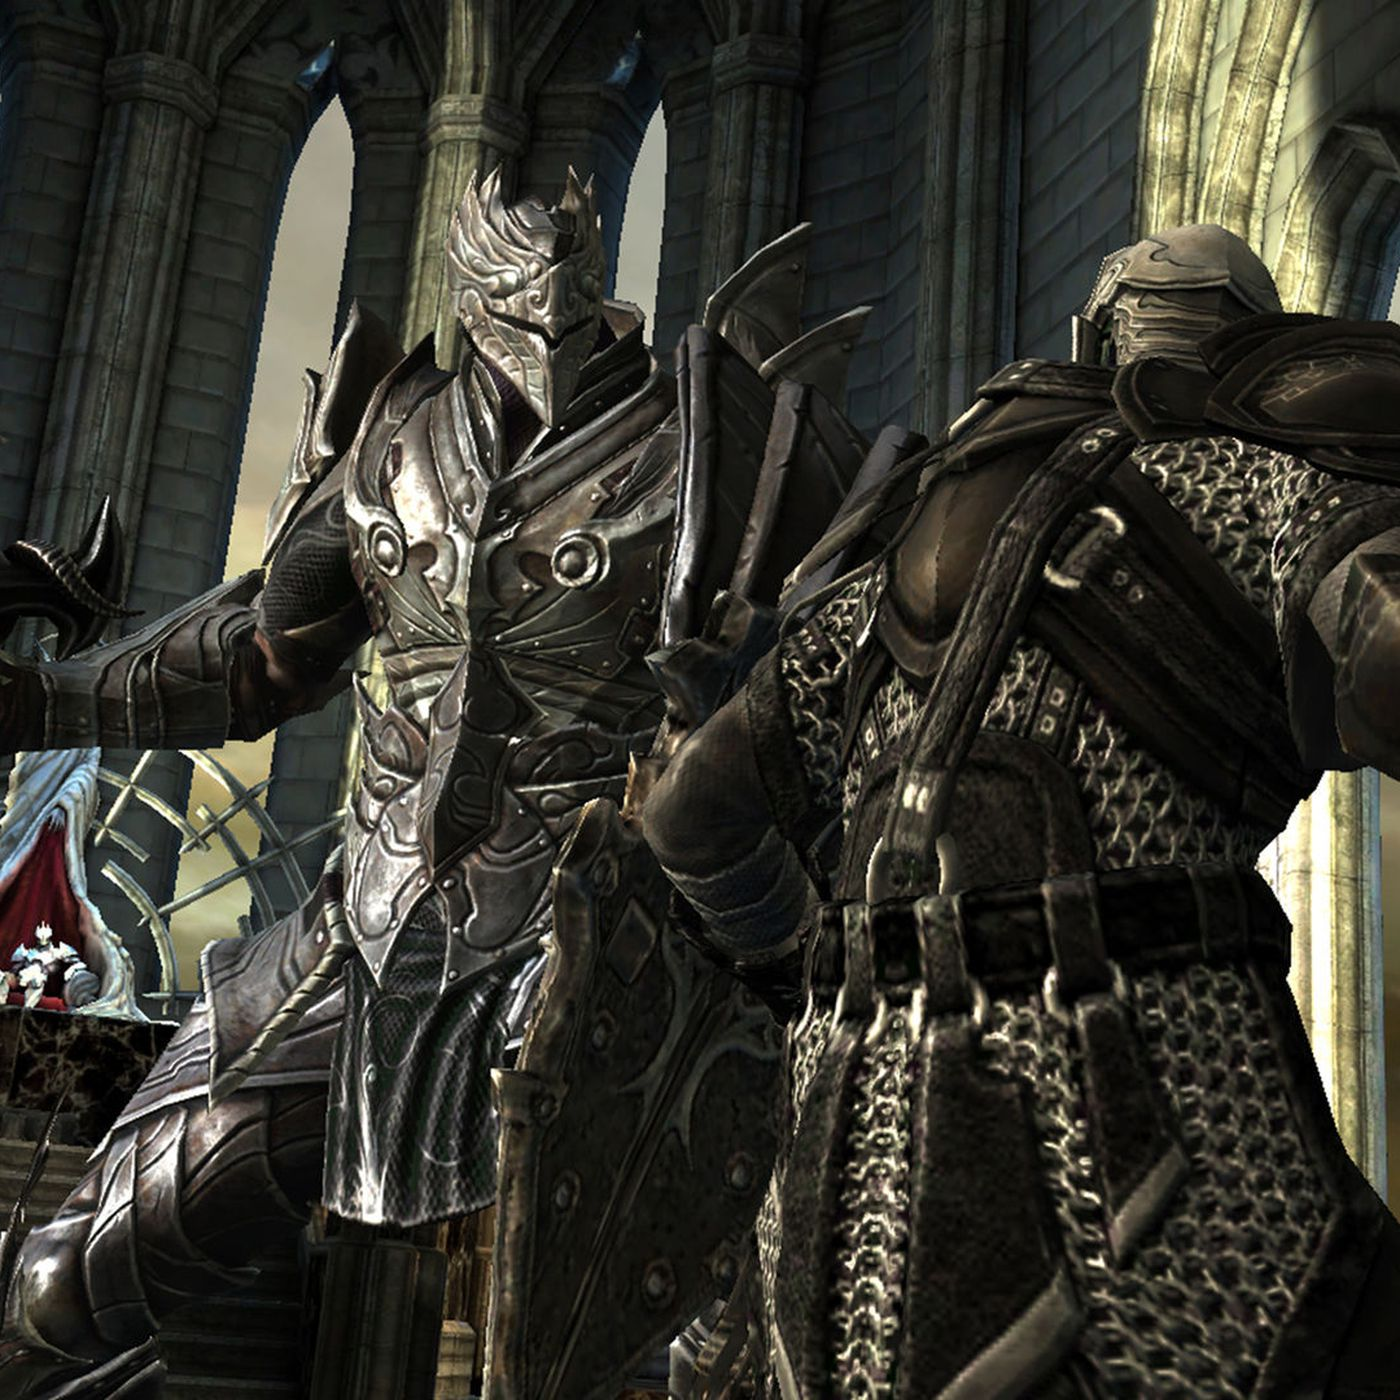 Epic Games pulls Infinity Blade games from App Store - Polygon